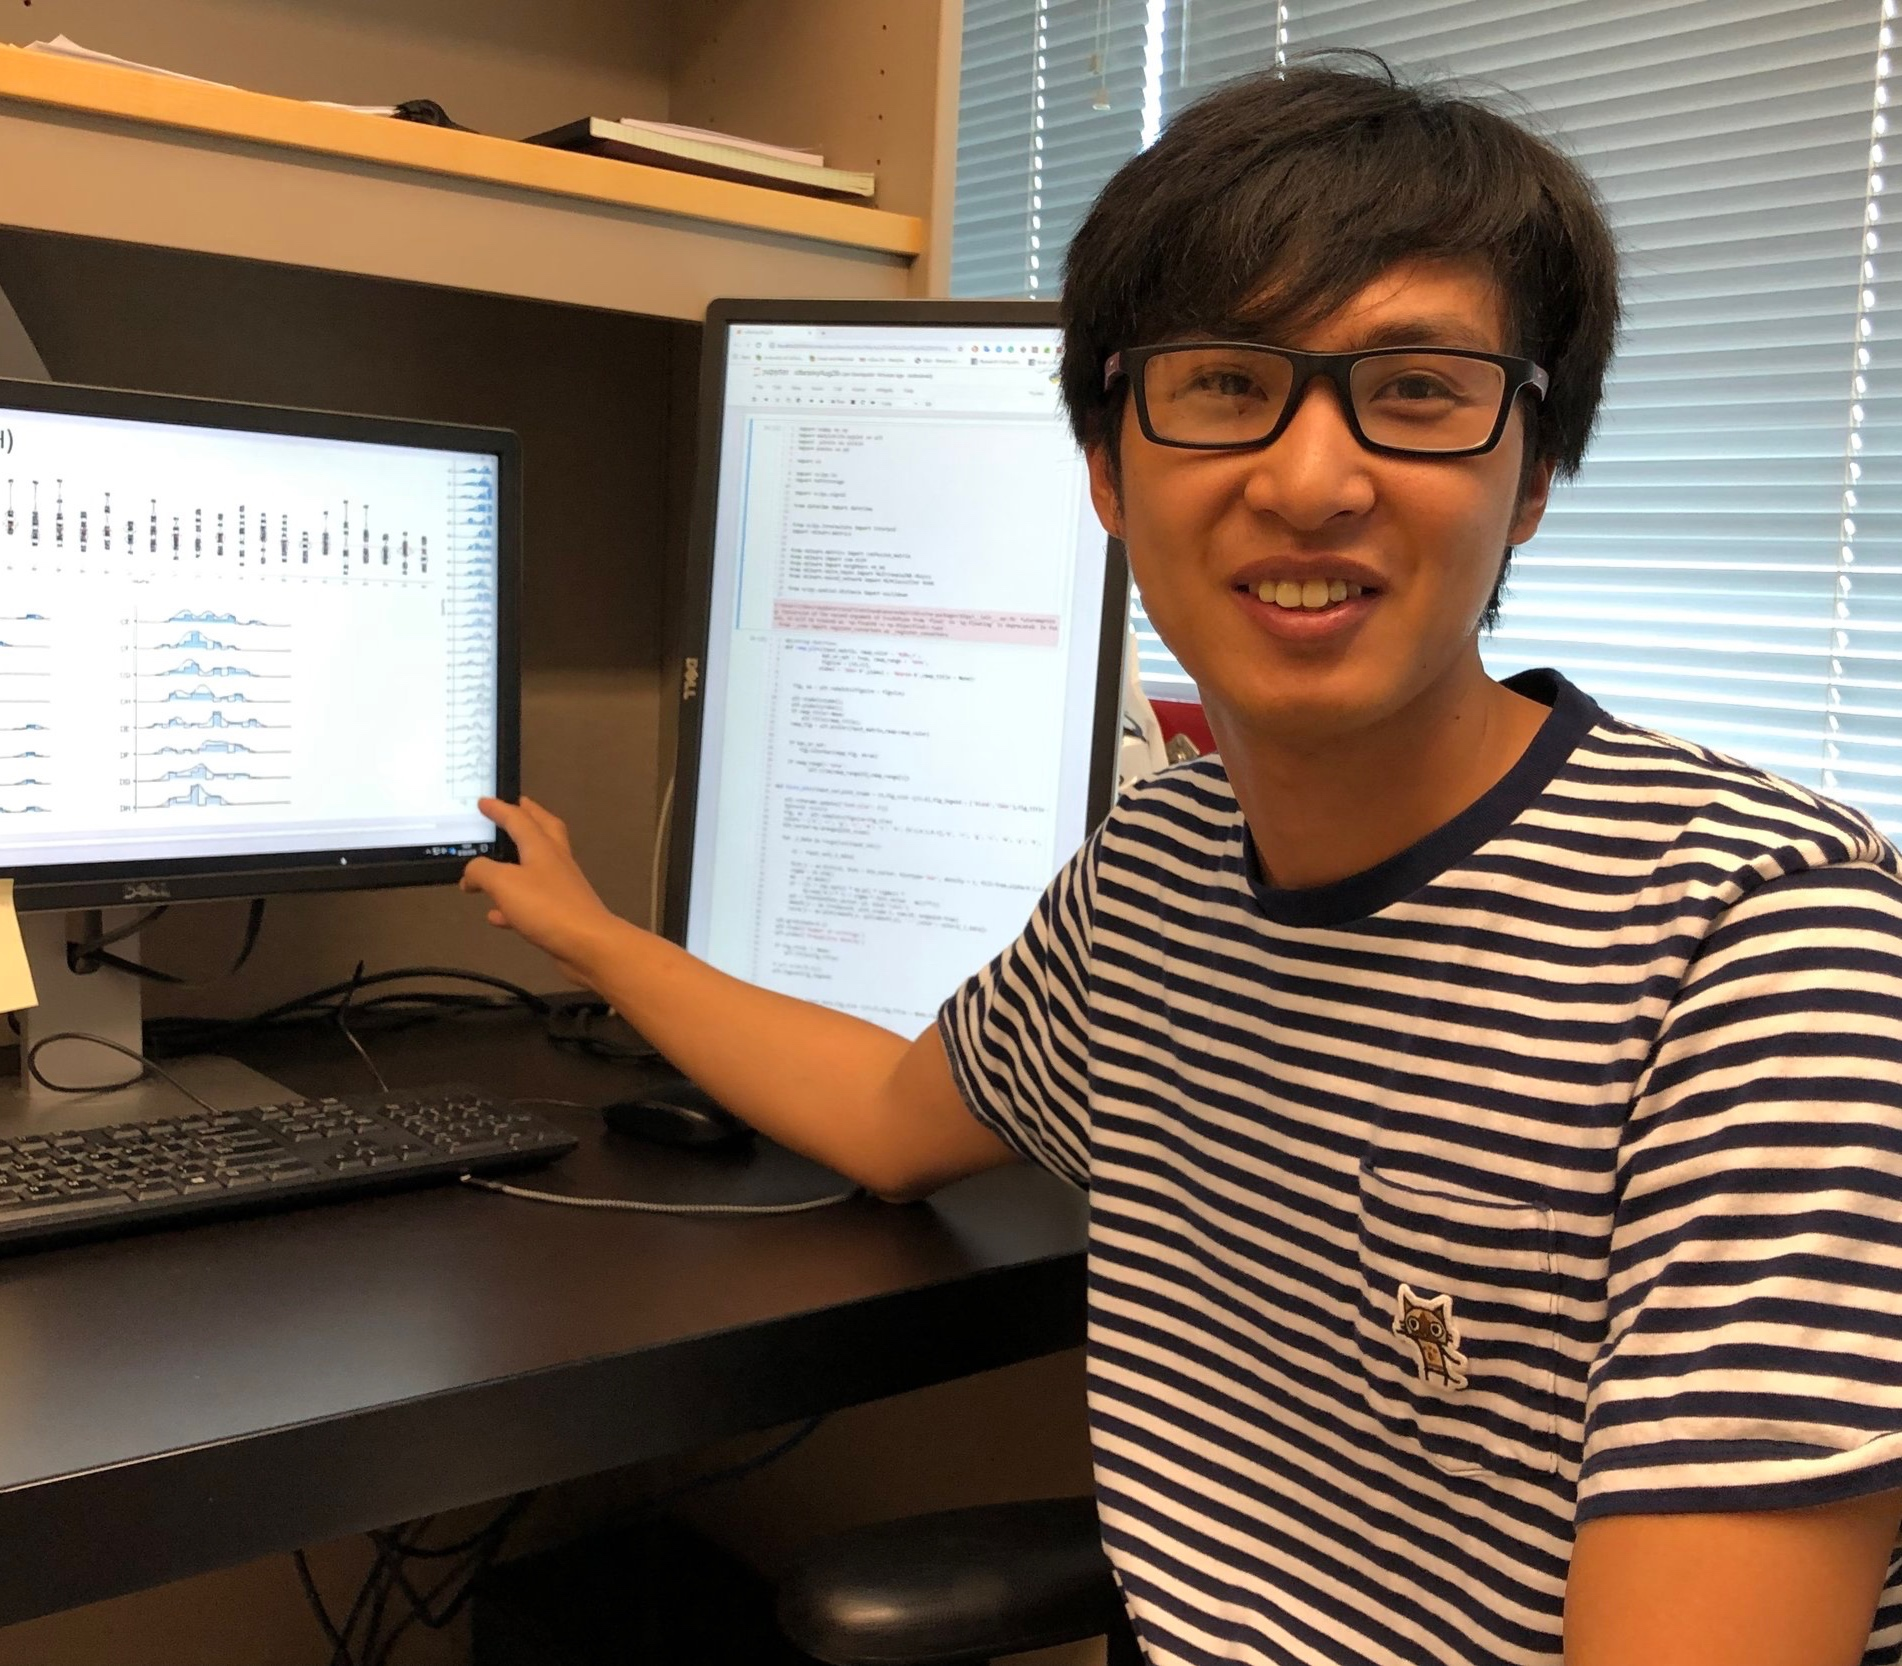 - Ben-Zheng LiBen-Zheng is an electrical engineering student from the University of Macau and is interested in neural circuit simulation, signal/data analysis, and closed-loop optogenetic control. He is currently working on modeling auditory and olfactory systems using spiking neural networks. Ben is co-advised by Dr. Tim Lei.